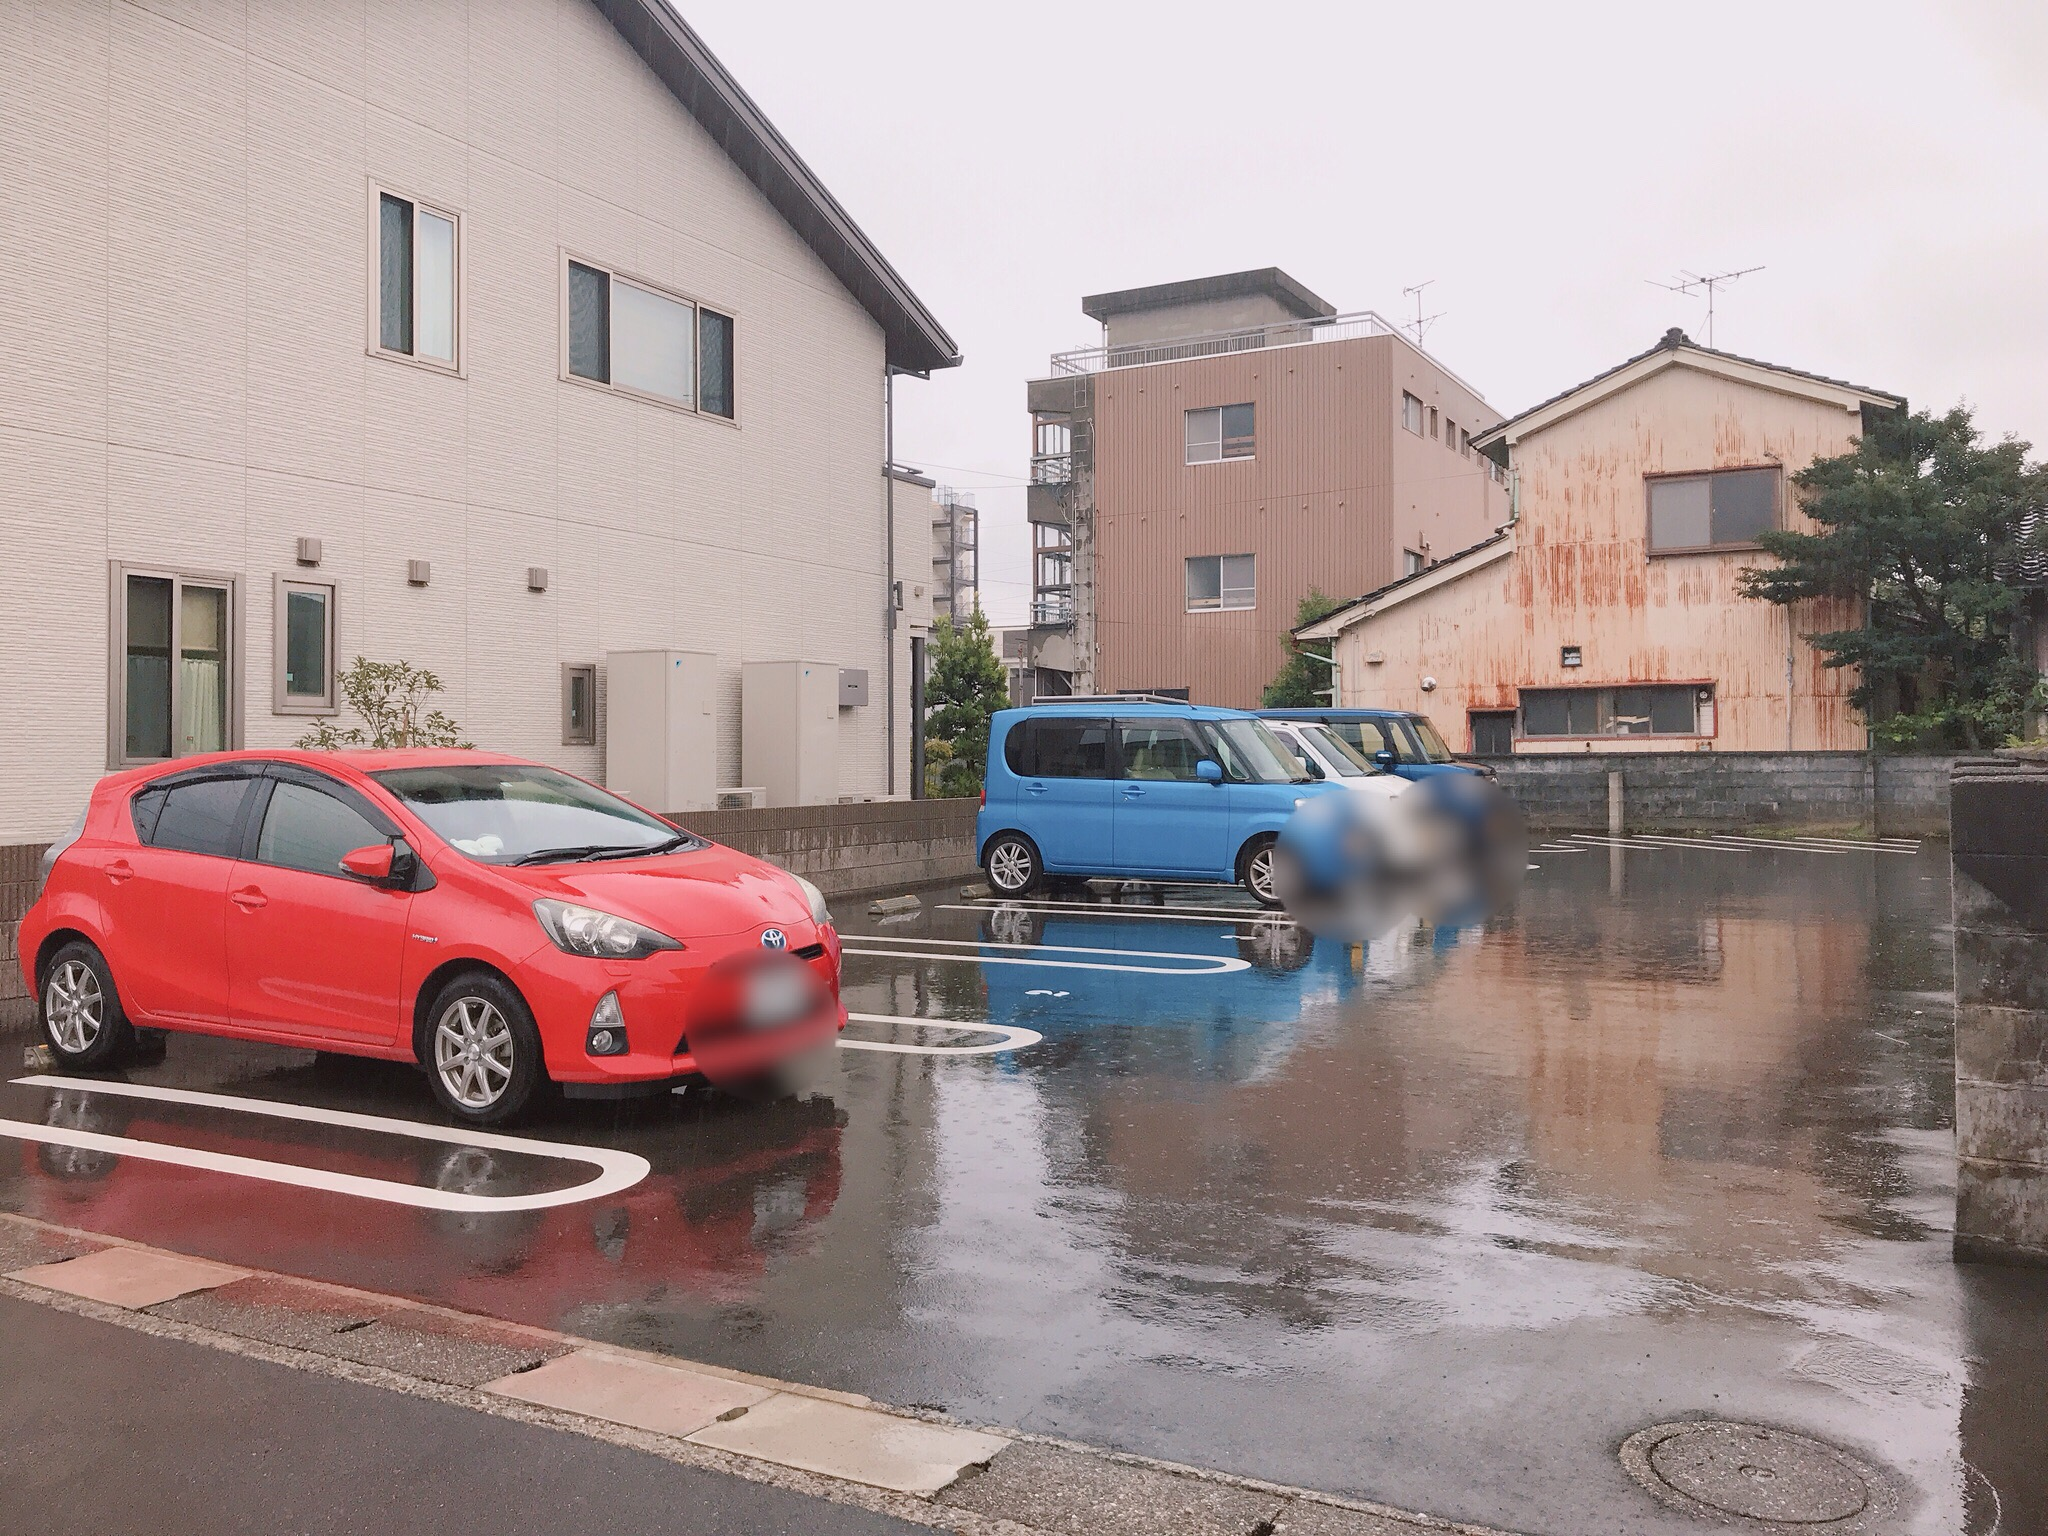 cafe amitie駐車場1